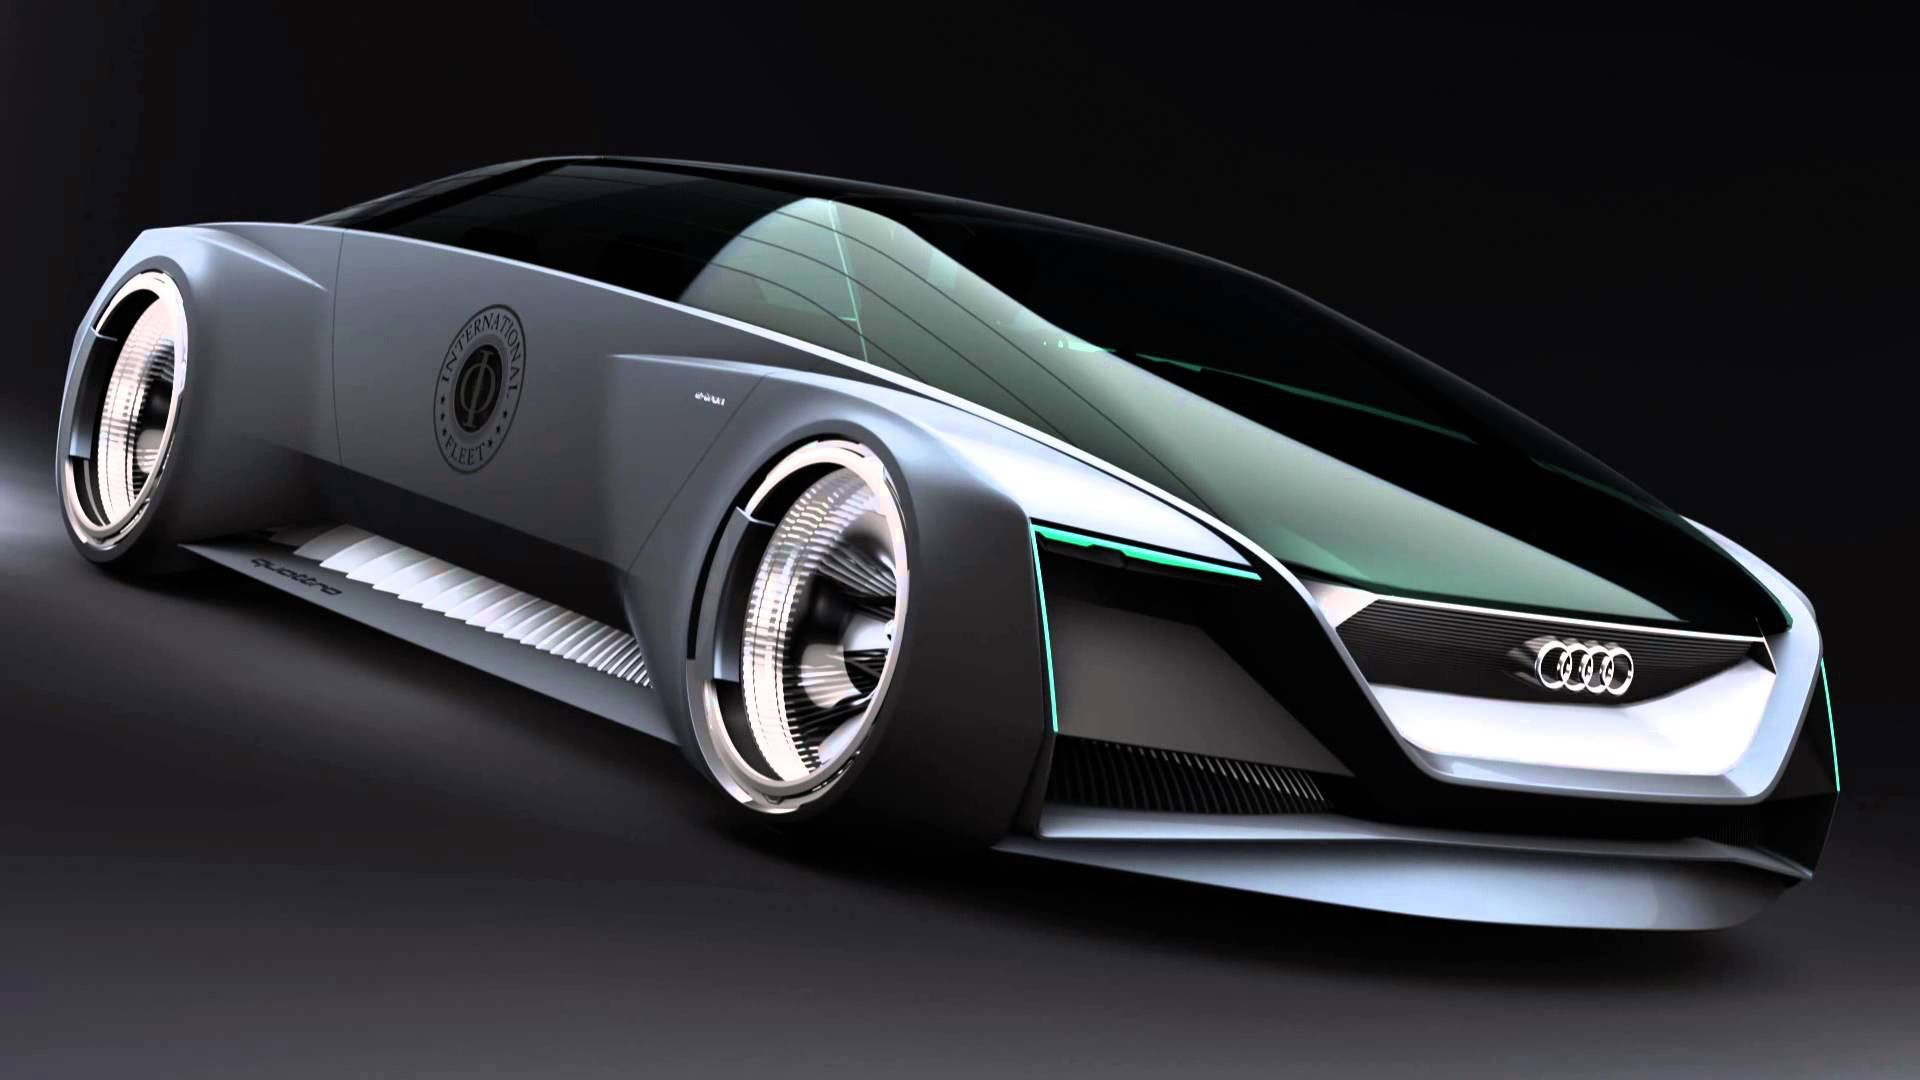 Future Audi Concept Car On Enders Game Wallpaper Images Hd